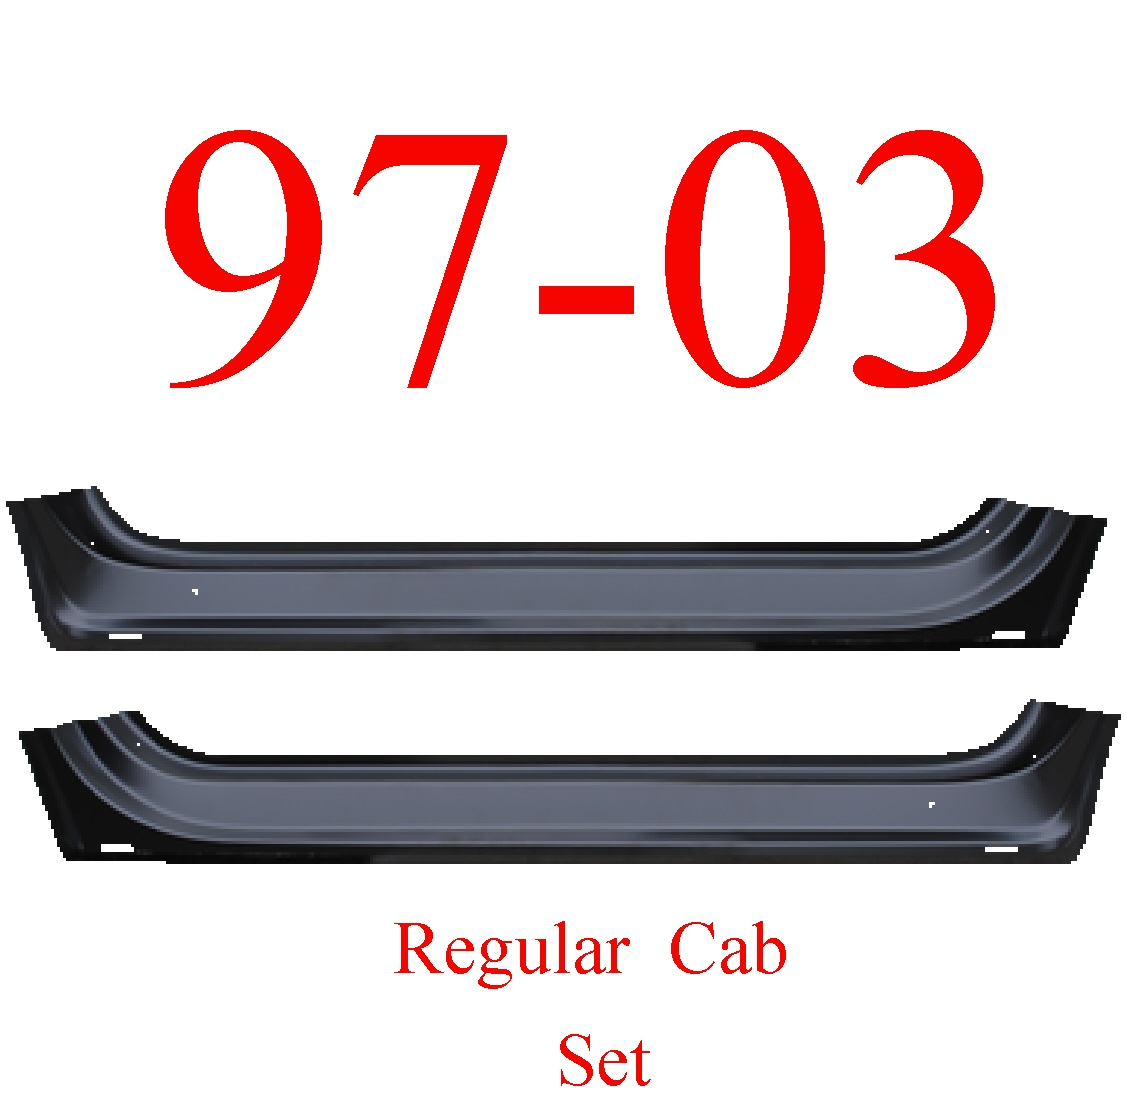 97-03 F150 Regular Cab Inner Door Bottom Set